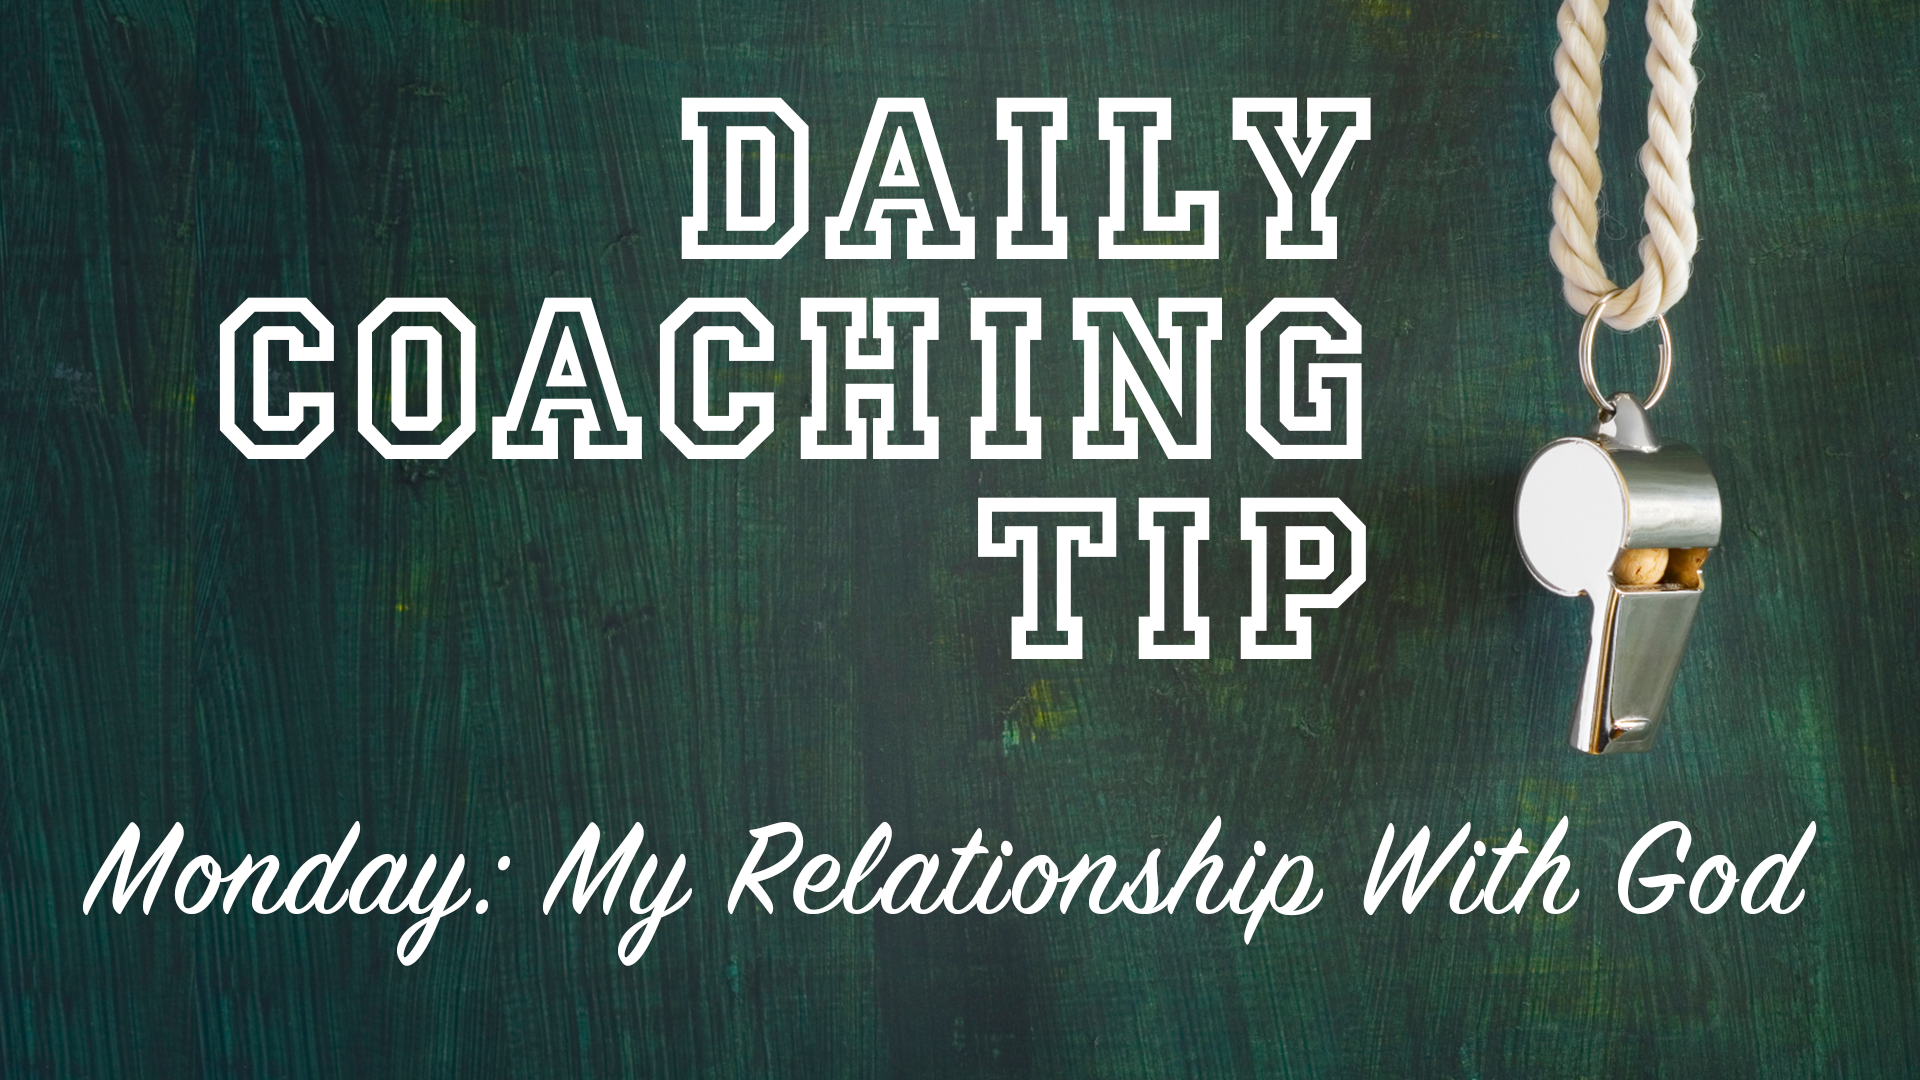 Daily Coaching Tip, Monday, May 09, 2016